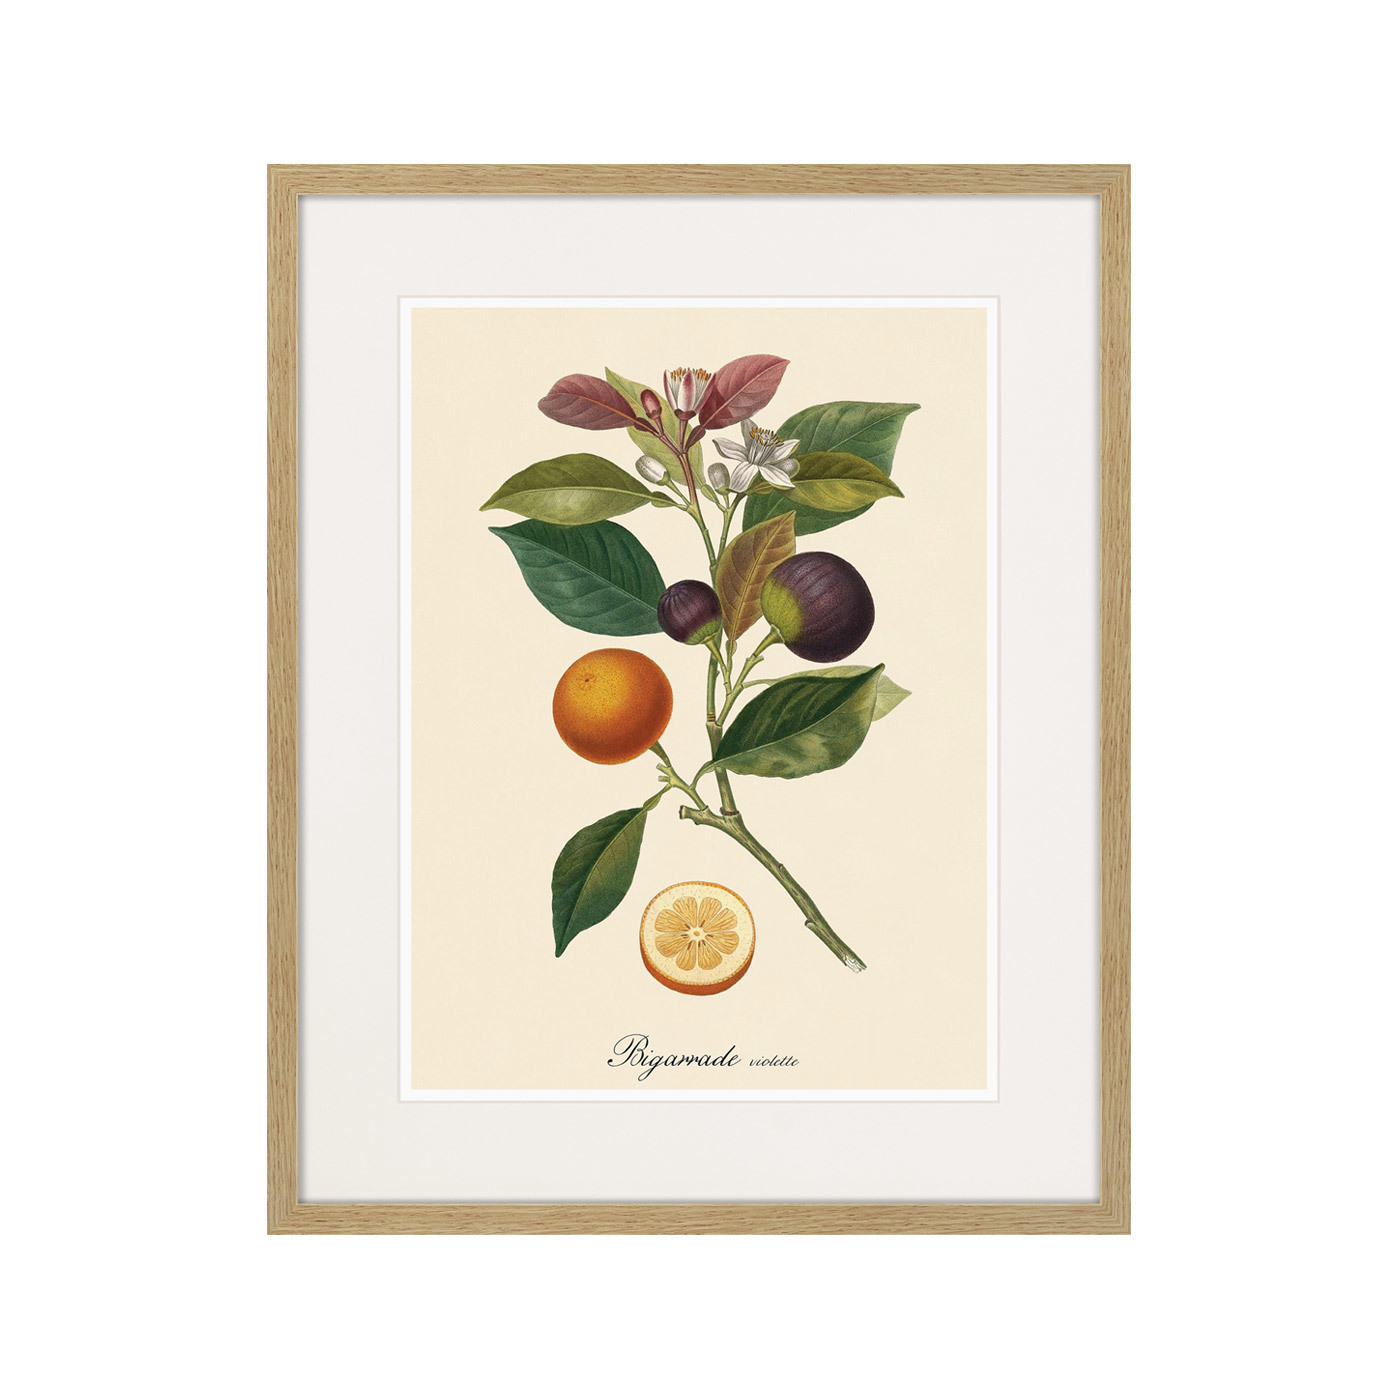 Juicy fruit lithography №11, 1870г.